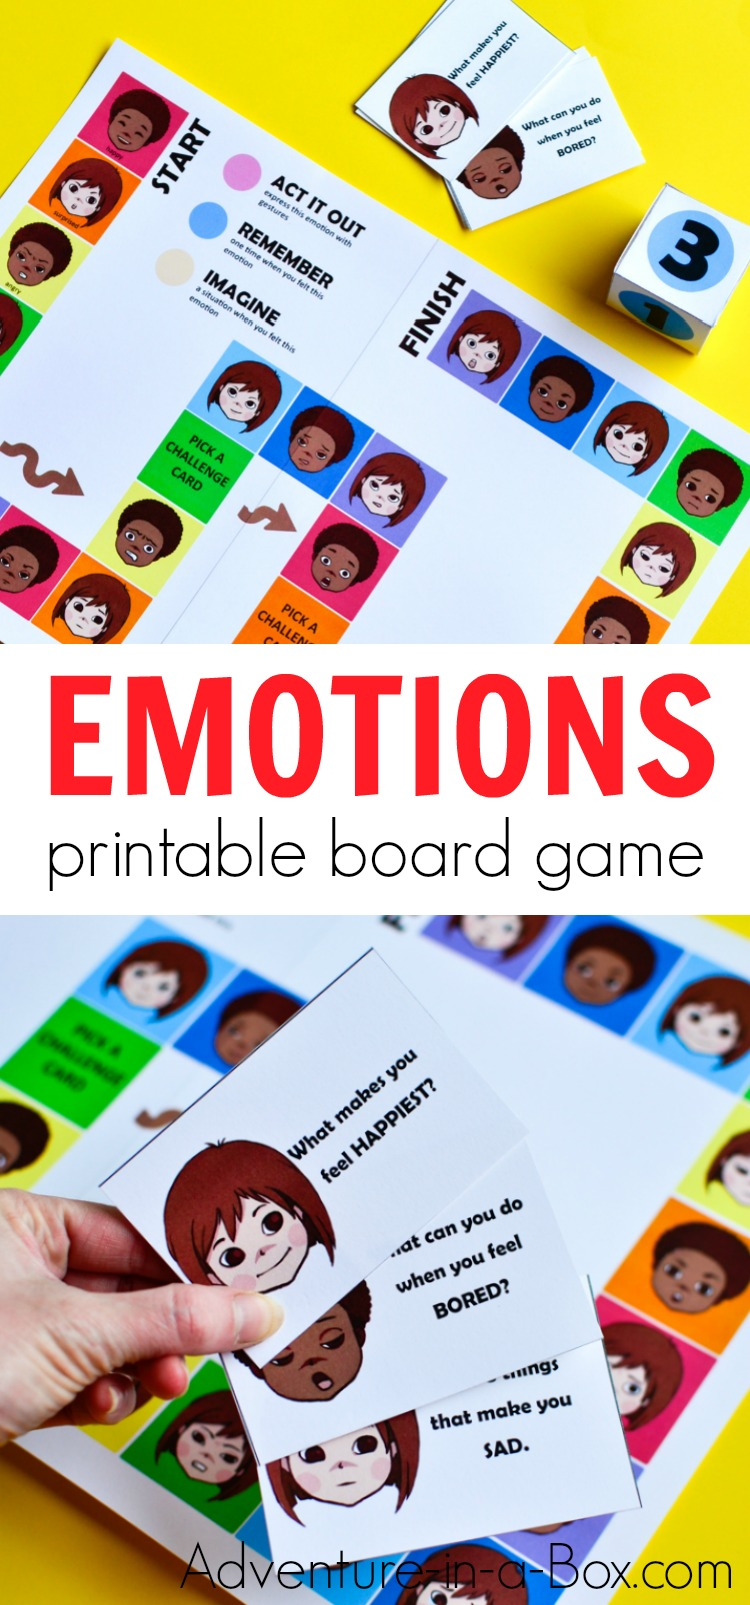 photograph regarding Printable Board Games known as Printable Board Recreation for Little ones in direction of Discover with regards to Feelings